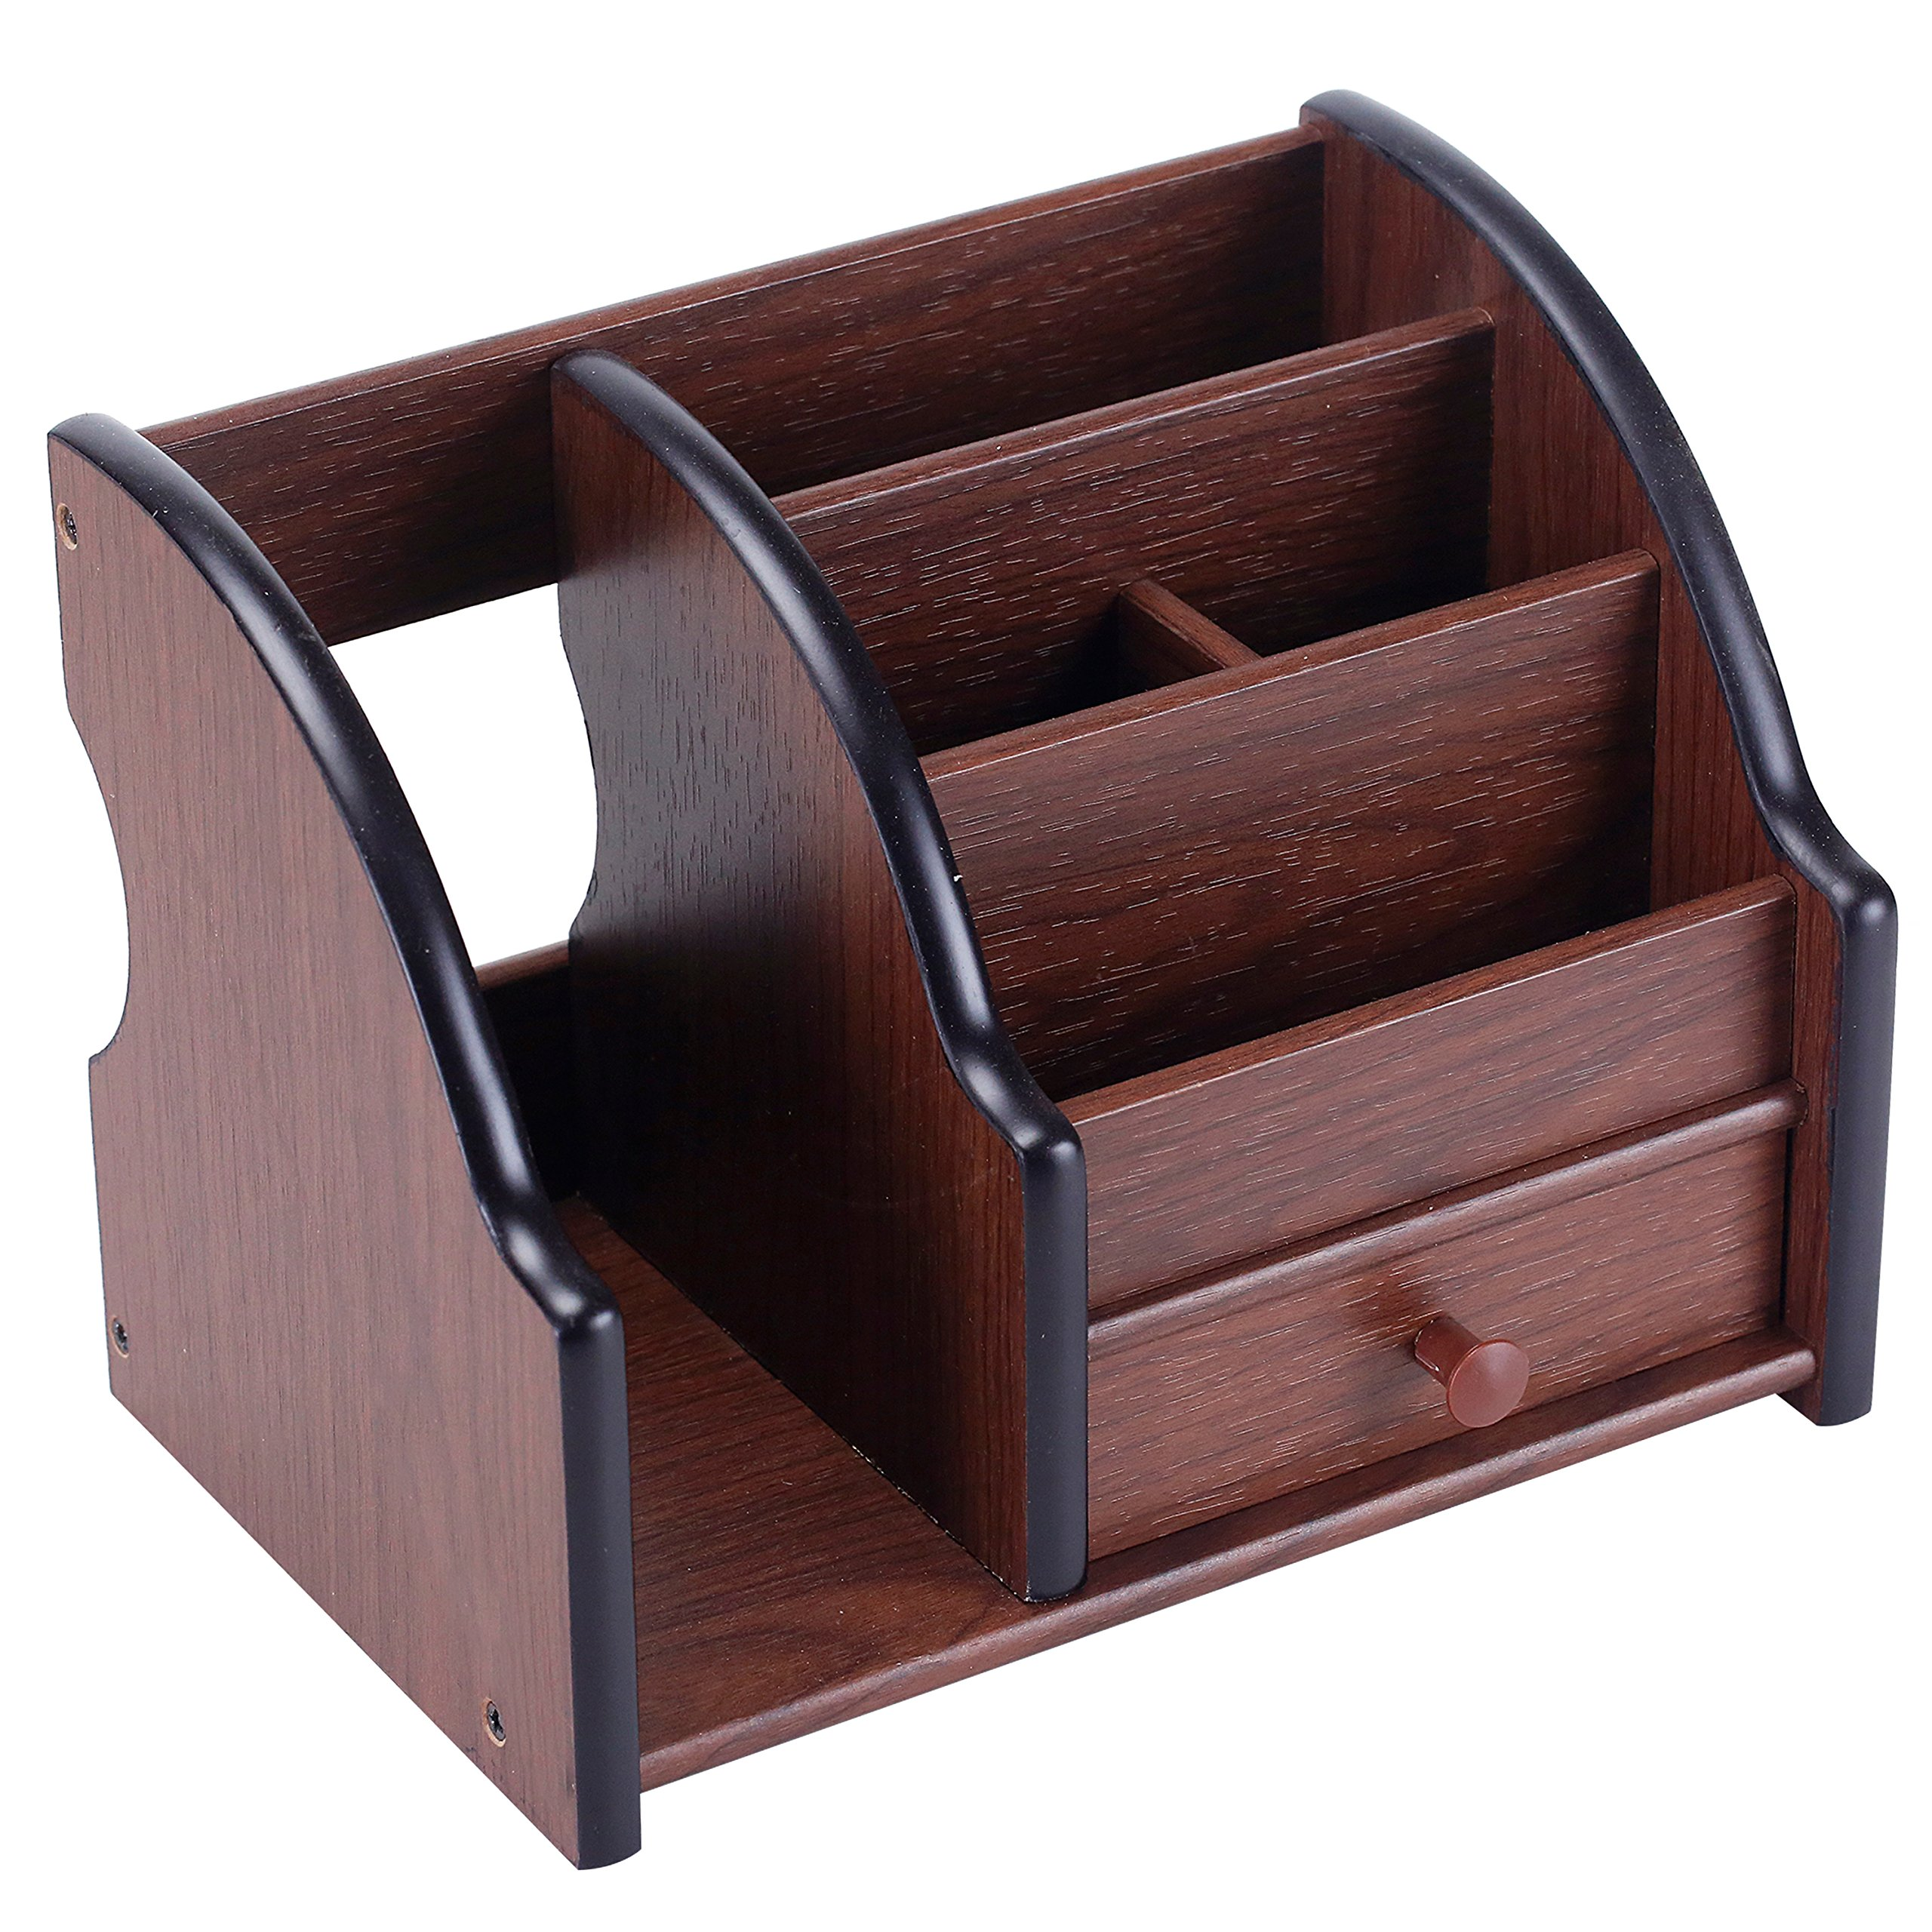 5 Compartment Wood Desktop Office Supply Organizer / Mail Holder Rack with Storage Drawer by MyGift (Image #4)